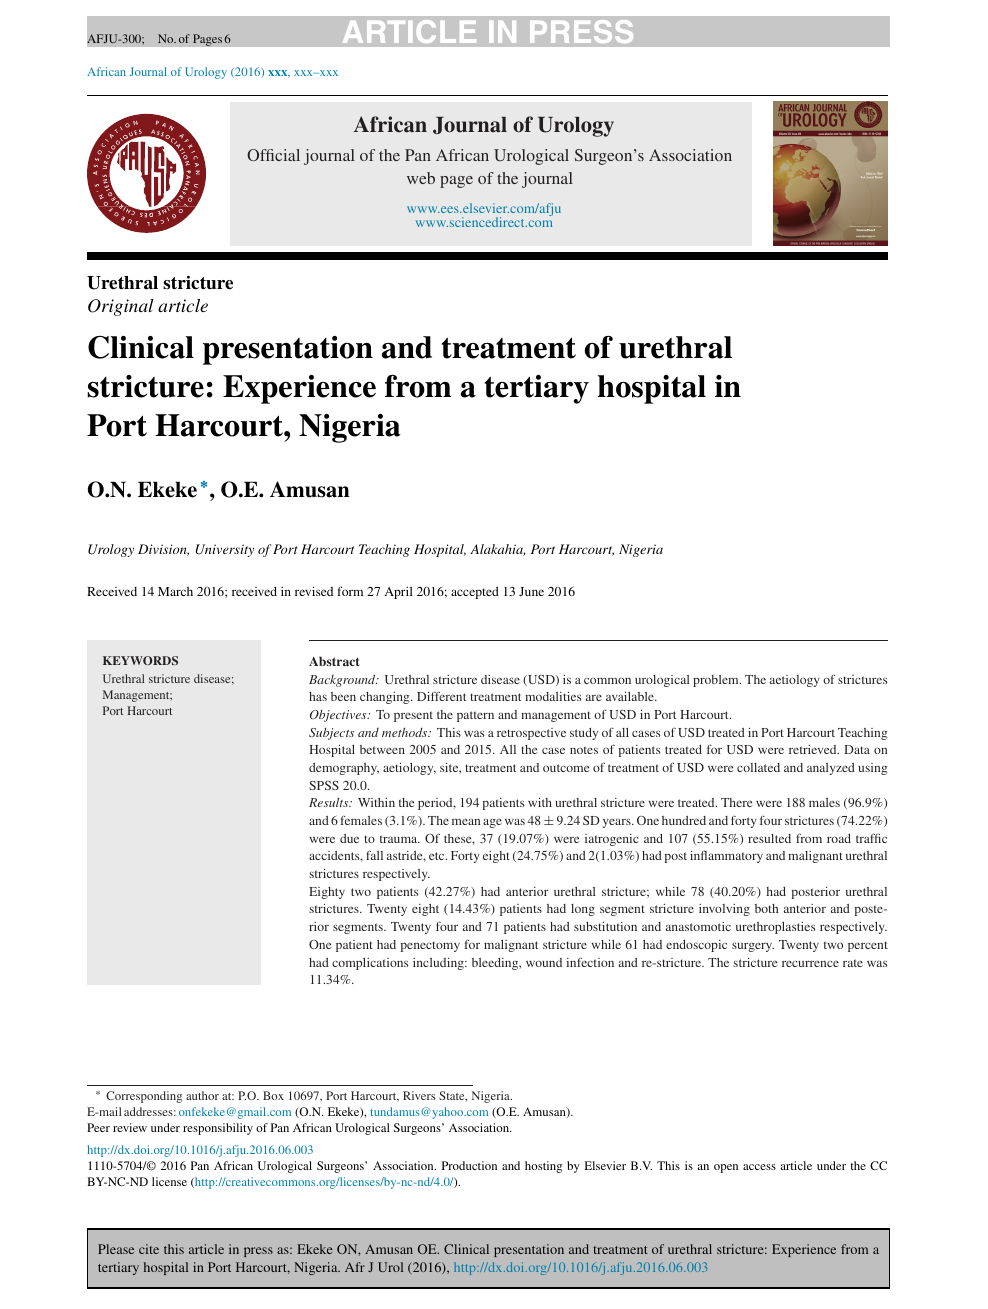 Clinical presentation and treatment of urethral stricture